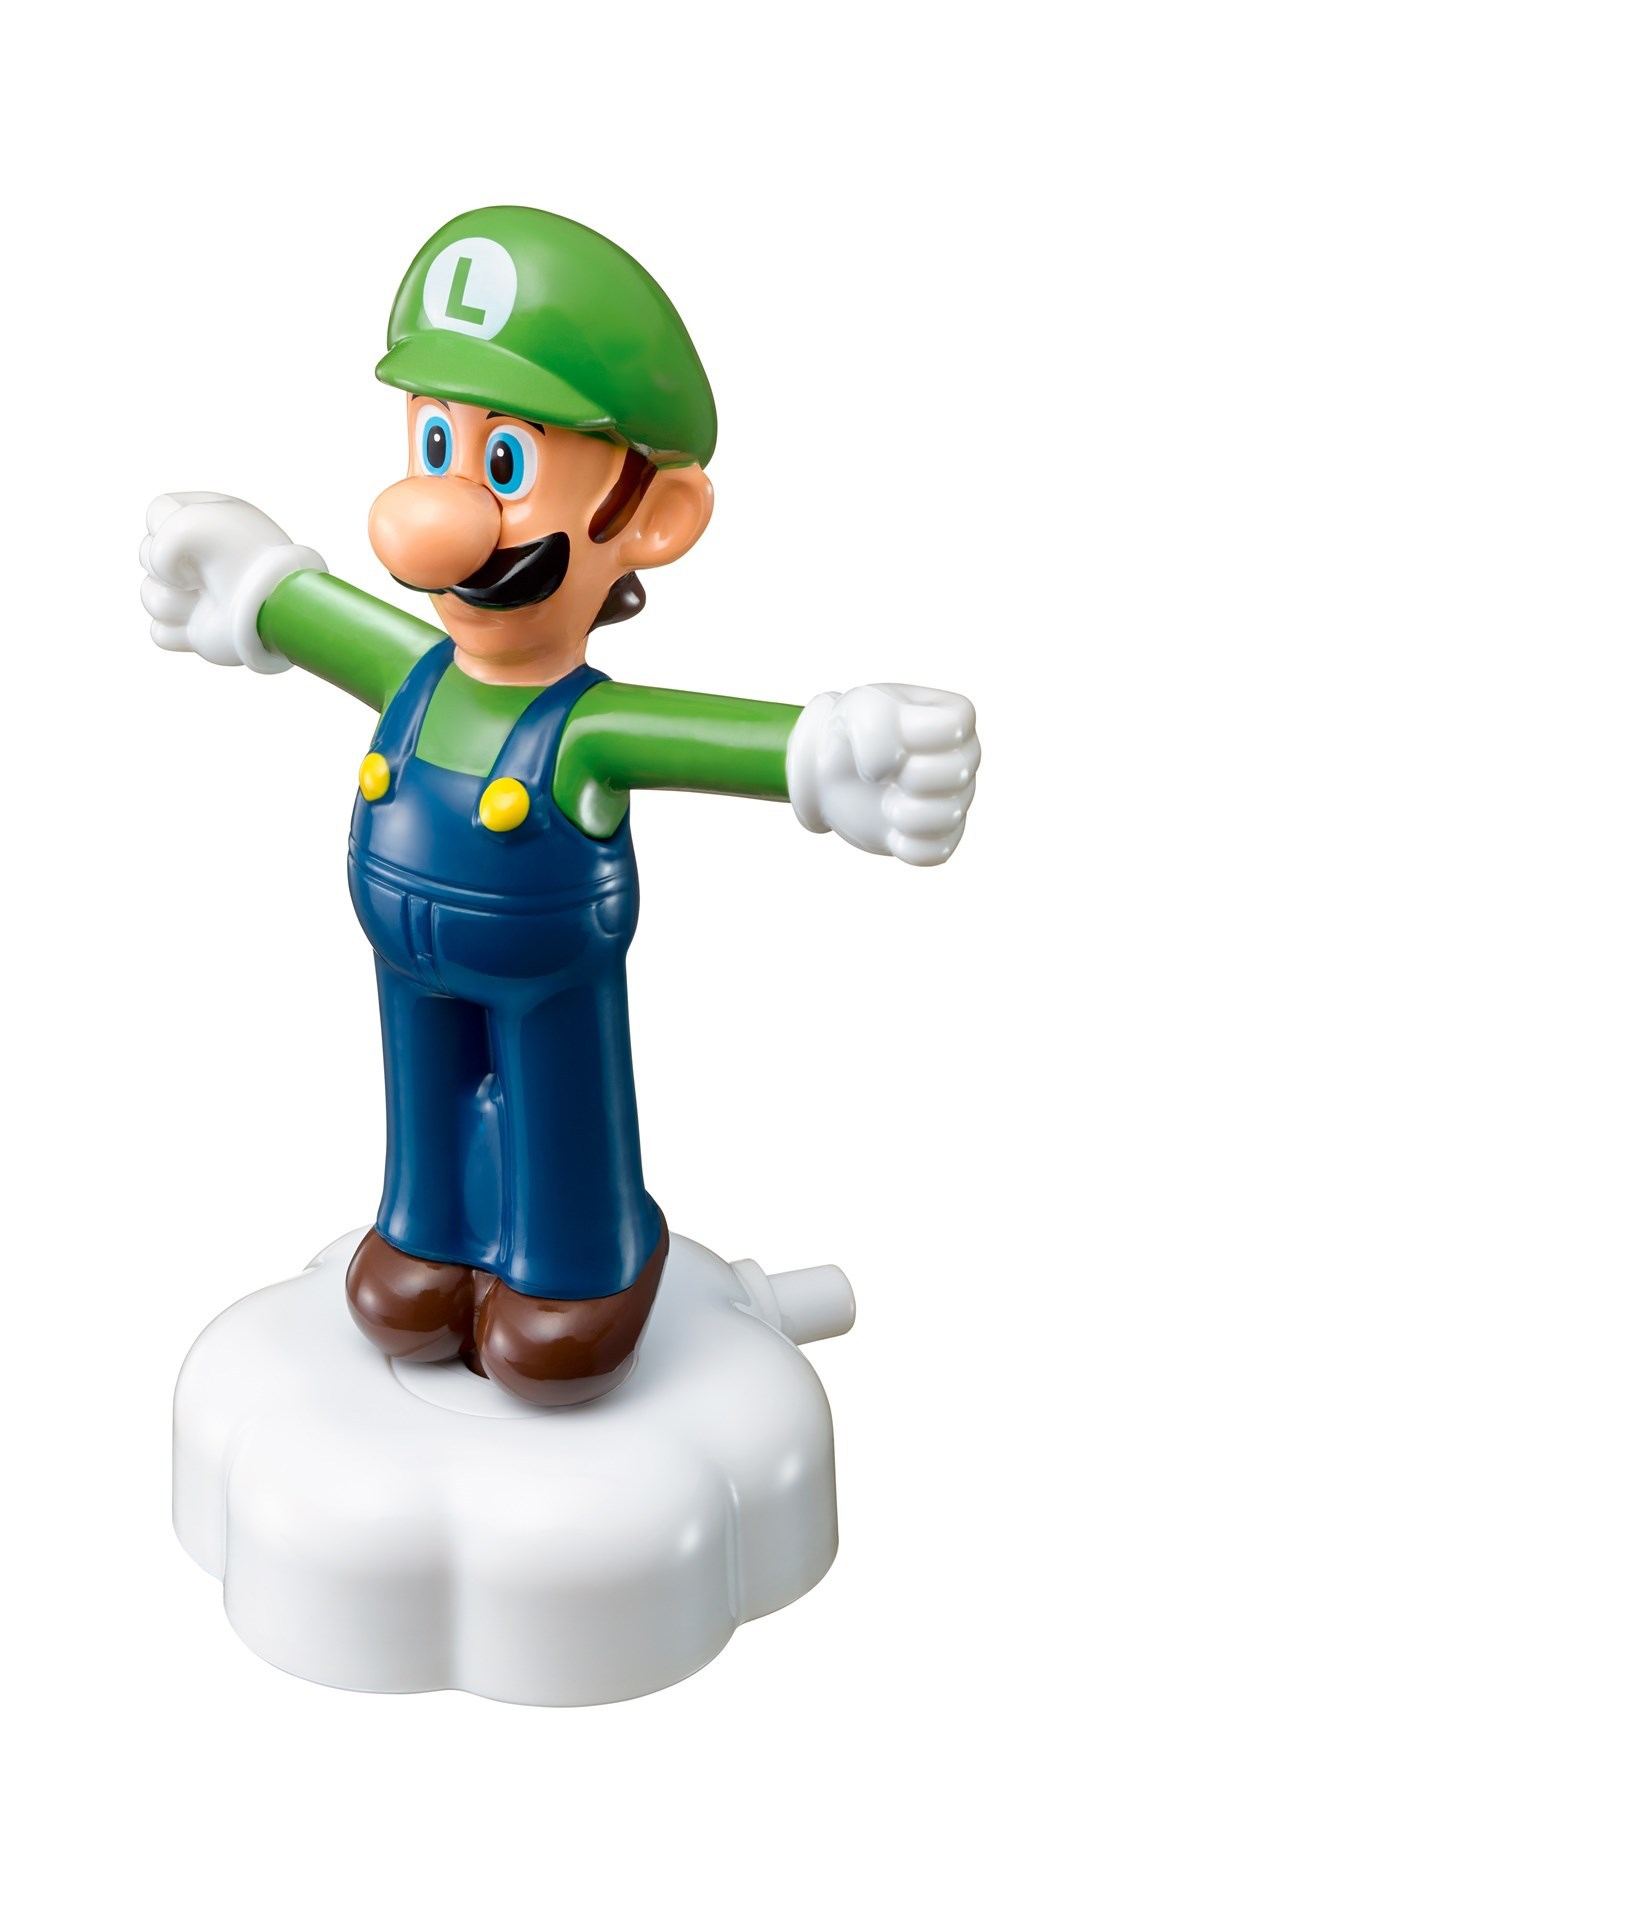 Japan More details and images for the new Mario toys in